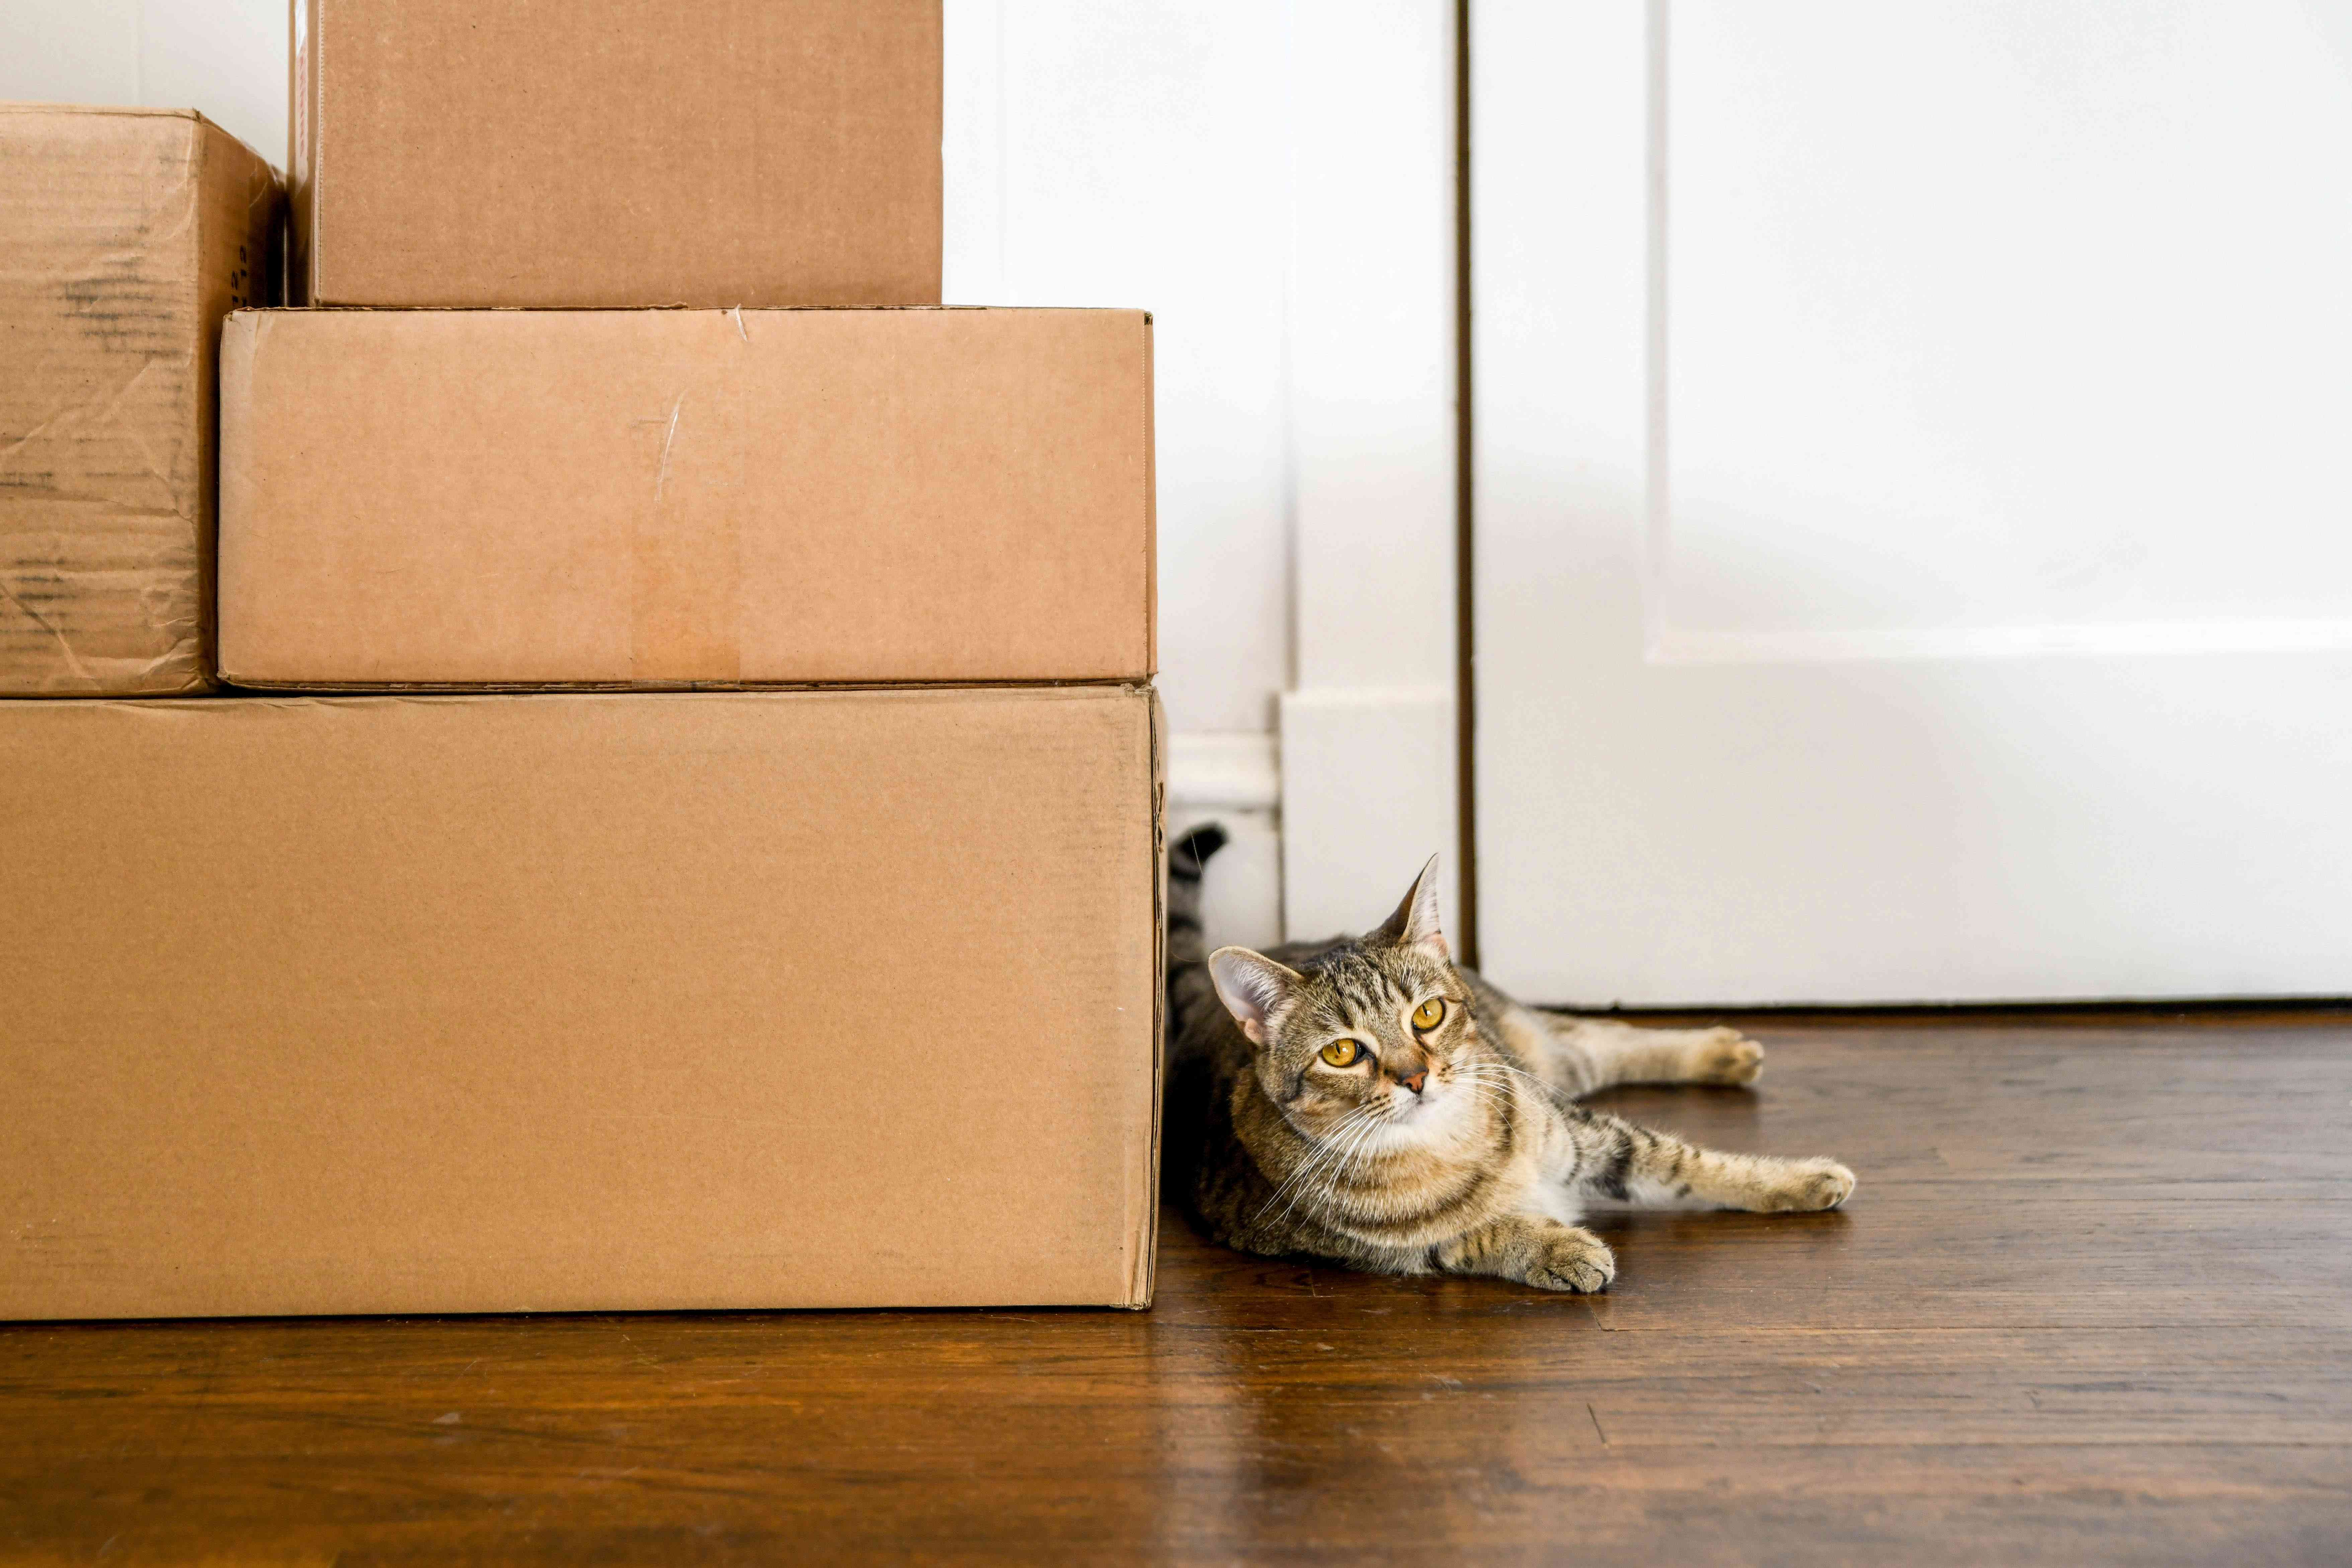 Brown cat laying next to cardboard boxes from moving